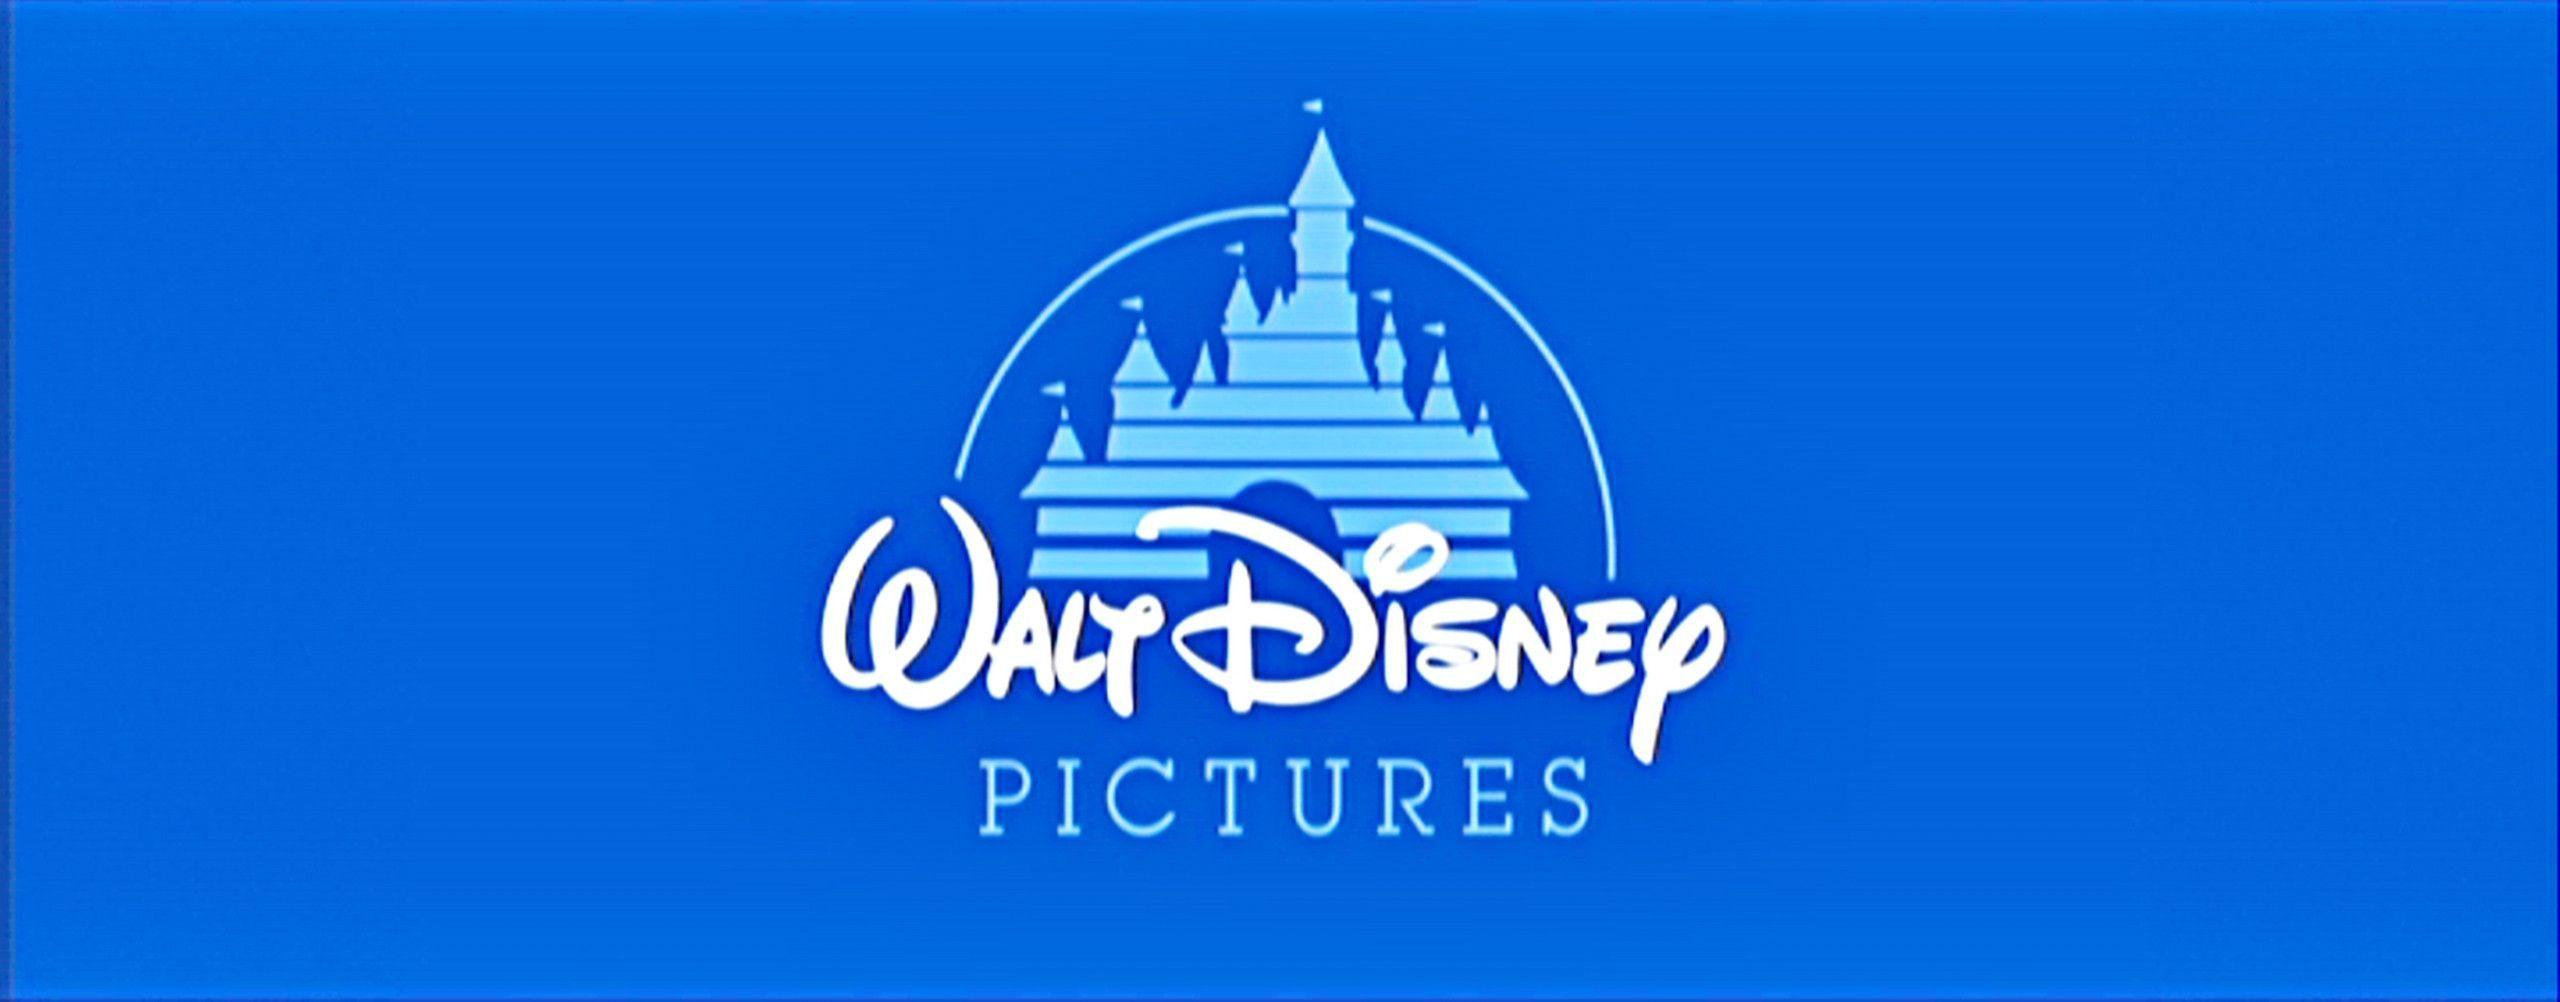 Disneyland Logo Wallpaper Disney Logo Wallpapers...